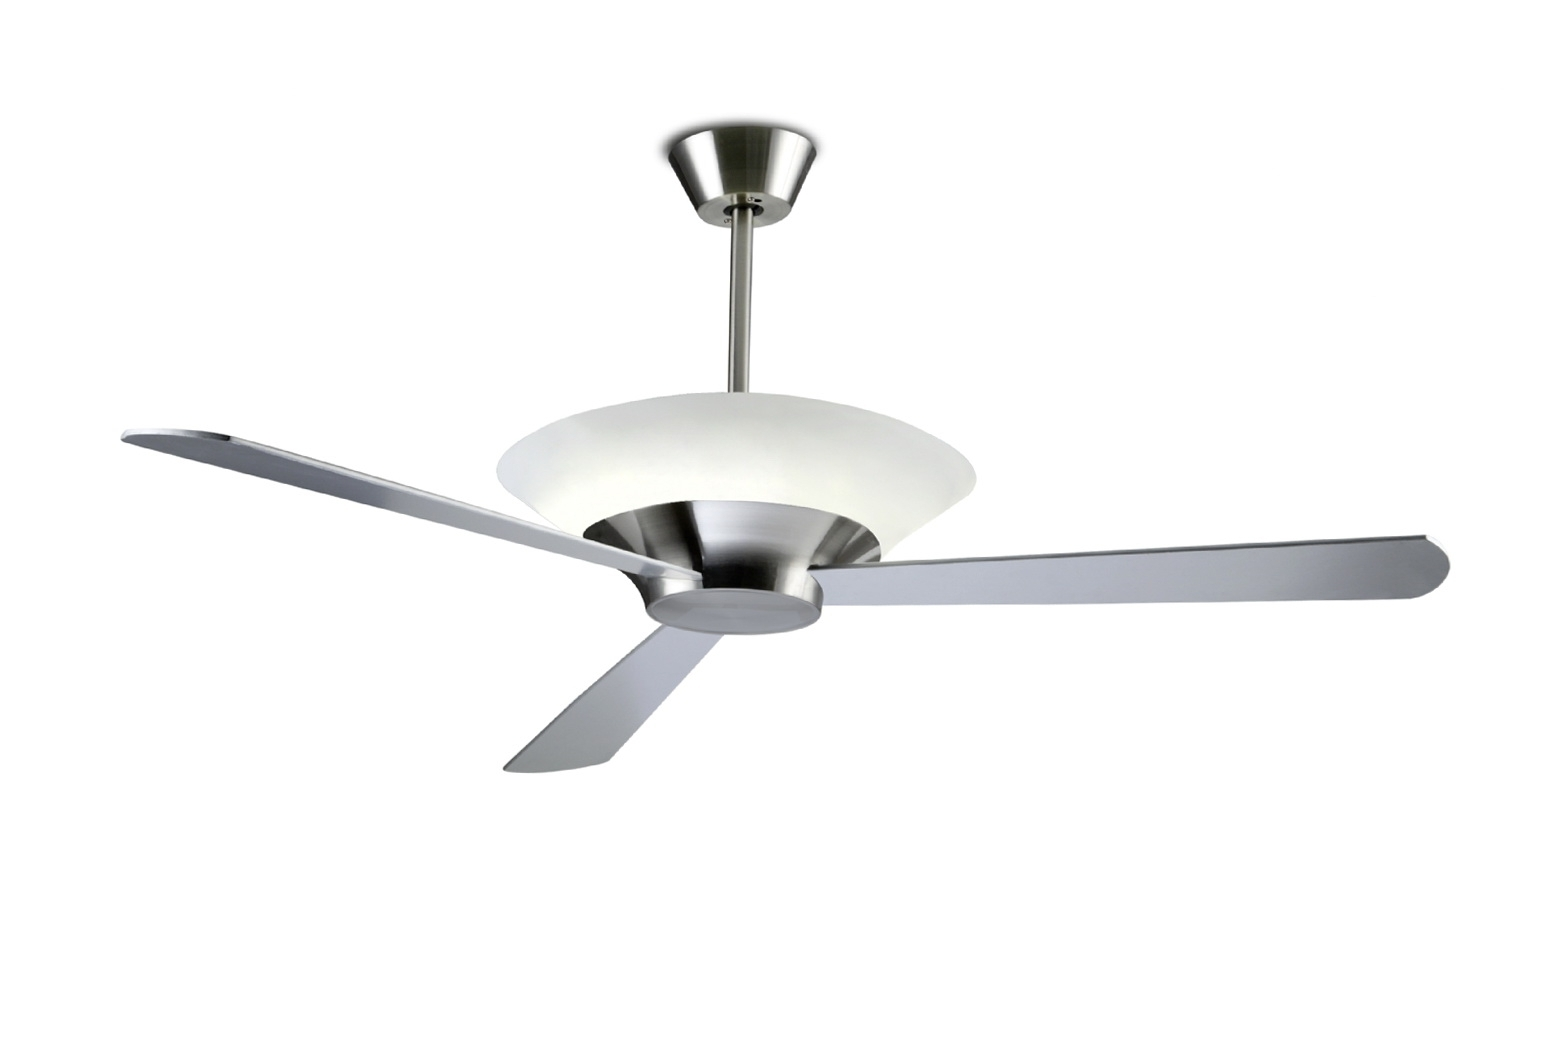 Mercator Ceiling Fans Bunnings • Ceiling Fans Ideas Pertaining To Most Recent Outdoor Ceiling Fans At Bunnings (View 12 of 20)